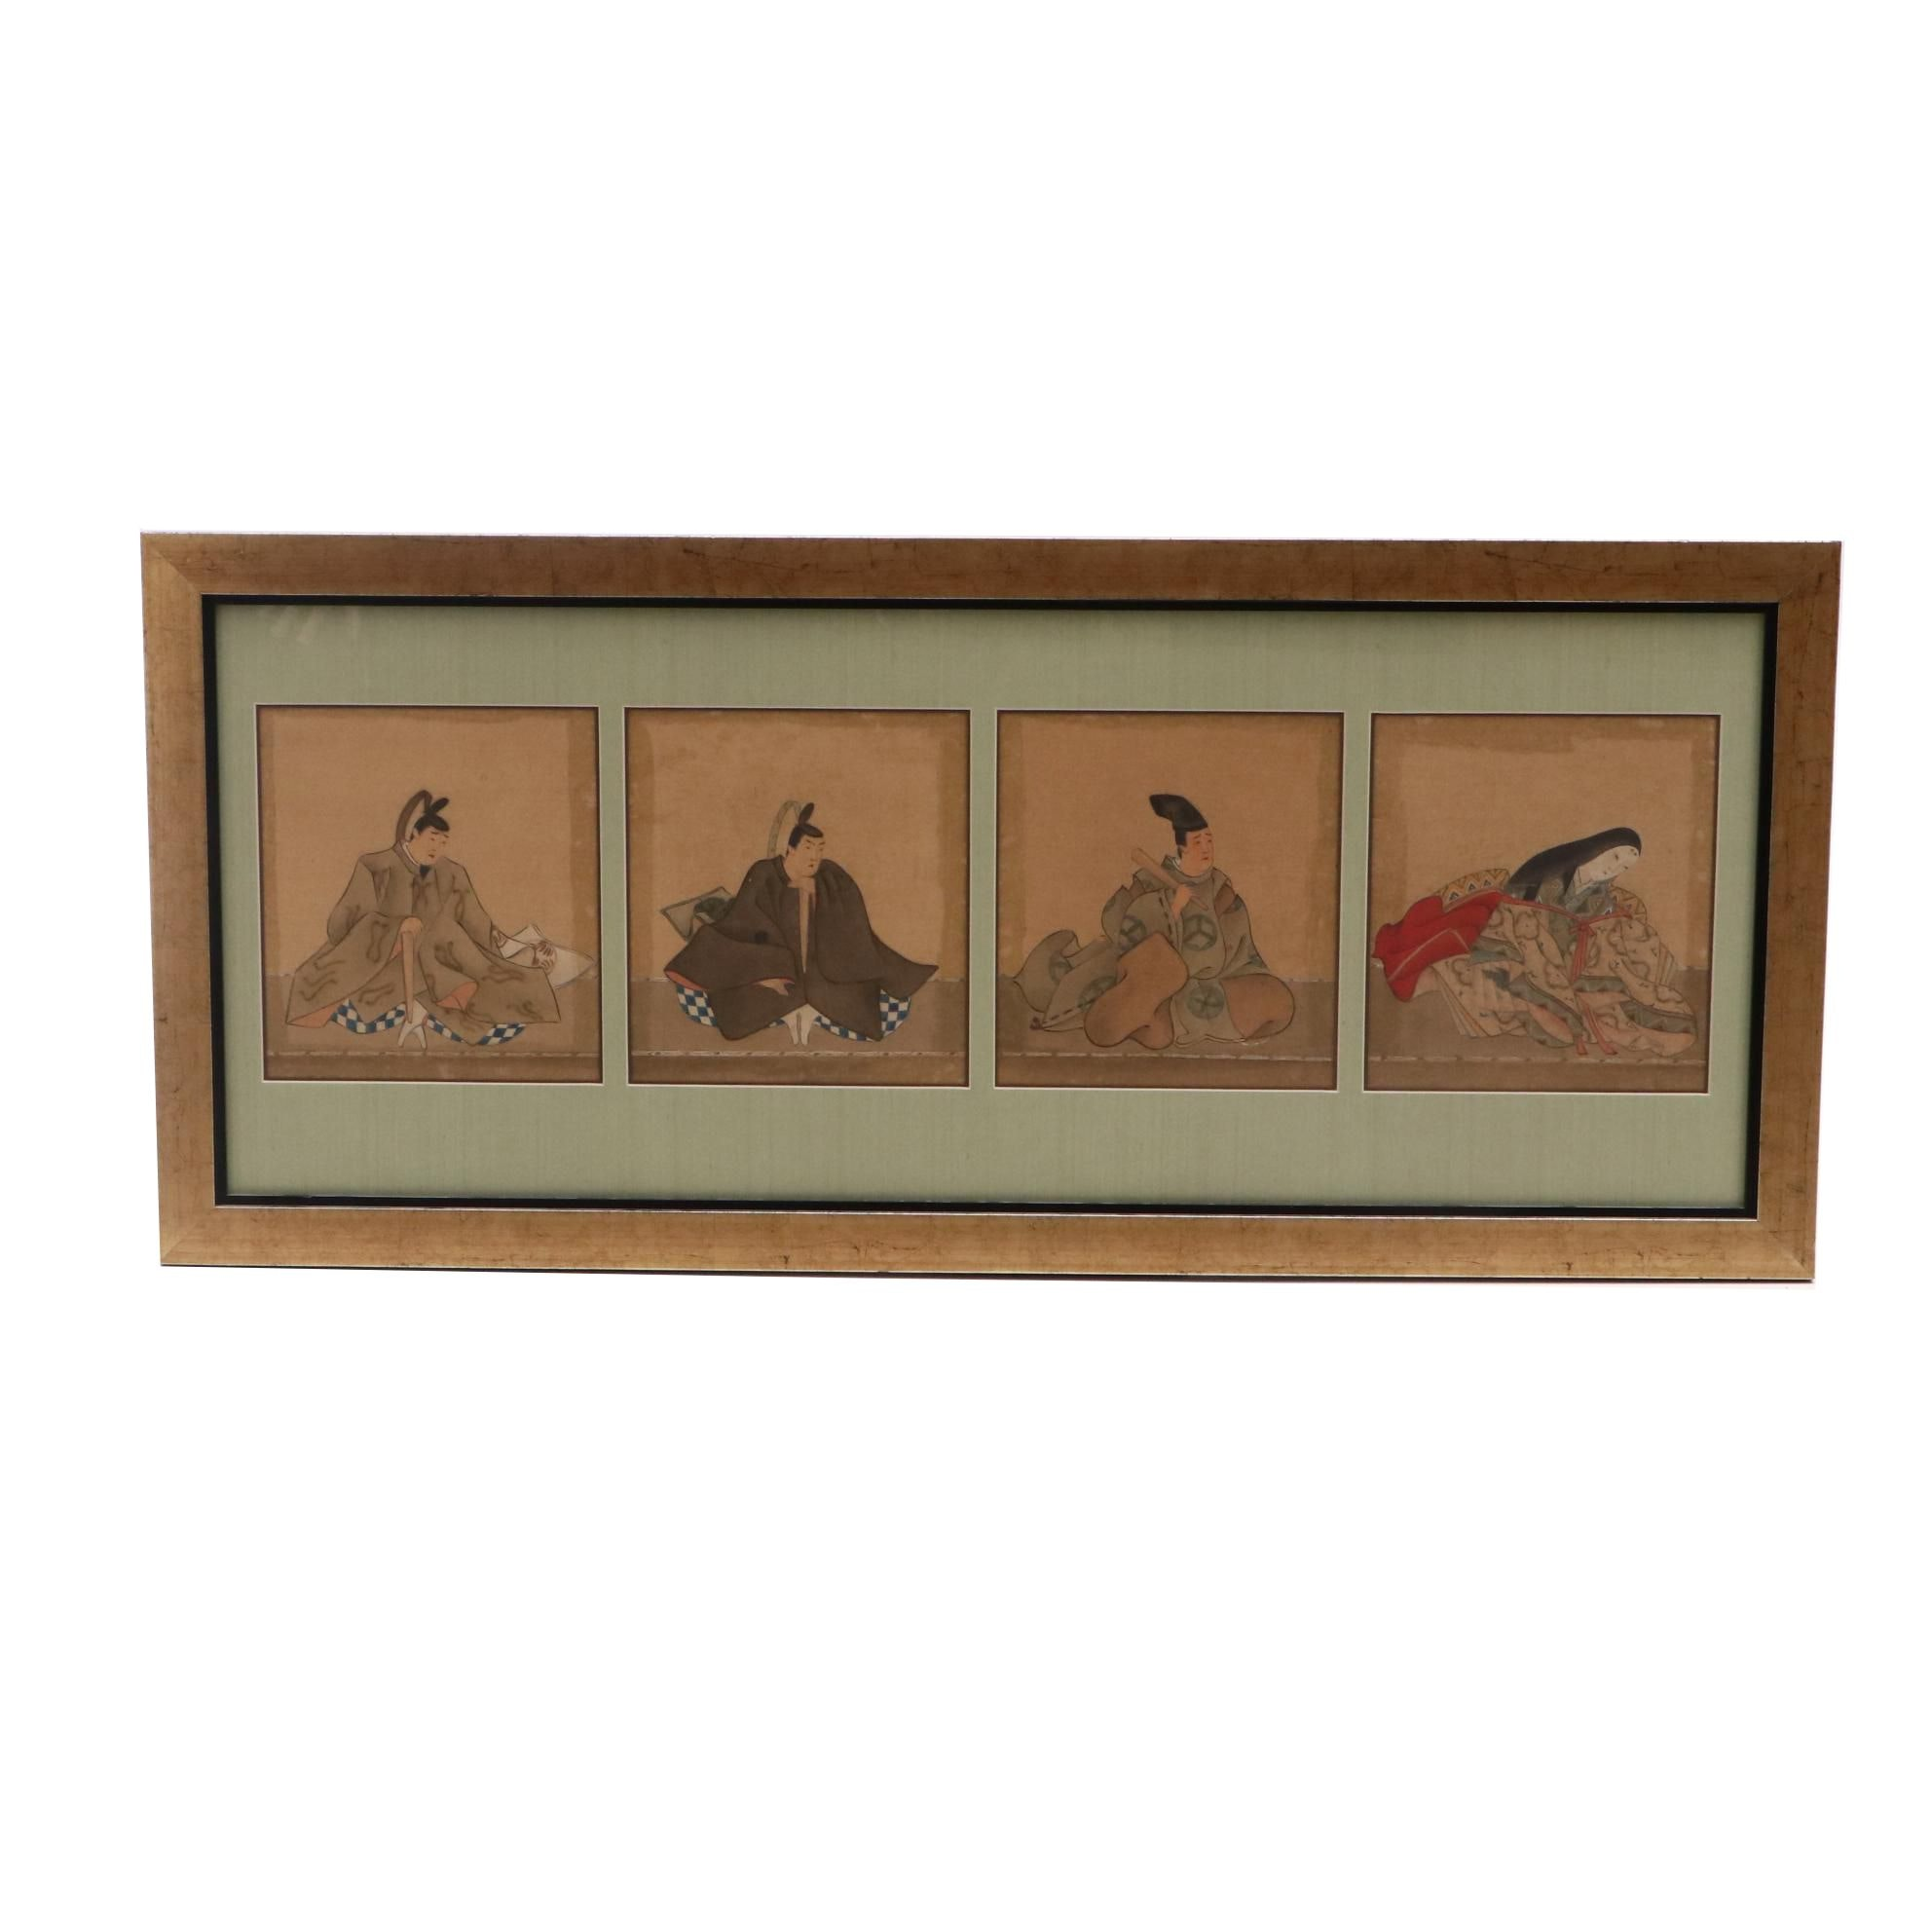 Four Antique Japanese Woodblock Portraits with Hand-Painted Accents